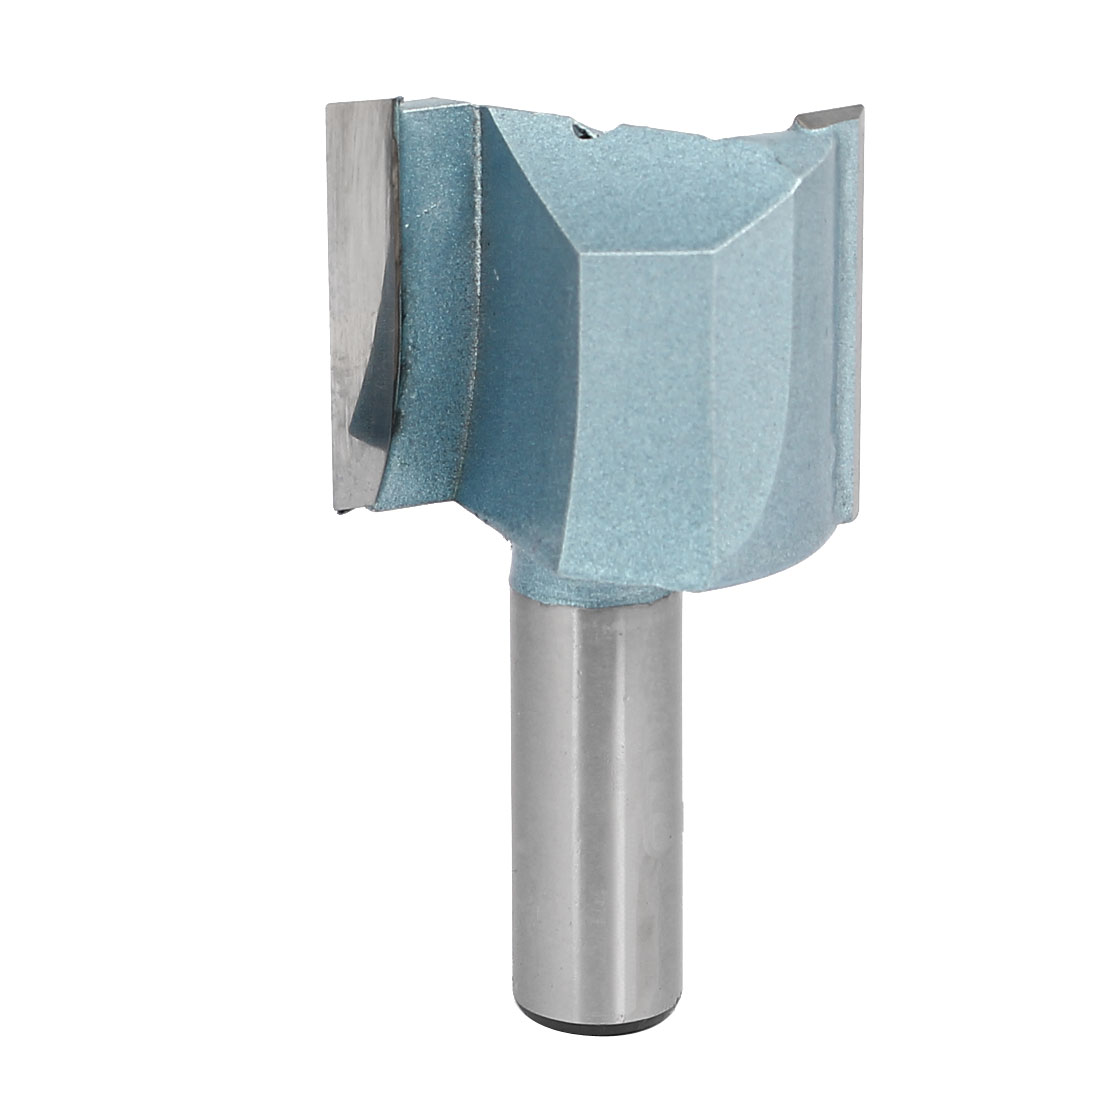 1-1/2-Inch Dia Carbide Double Flute Straight Router Bit with 1-3/16-Inch Length 1/2-Inch Shank